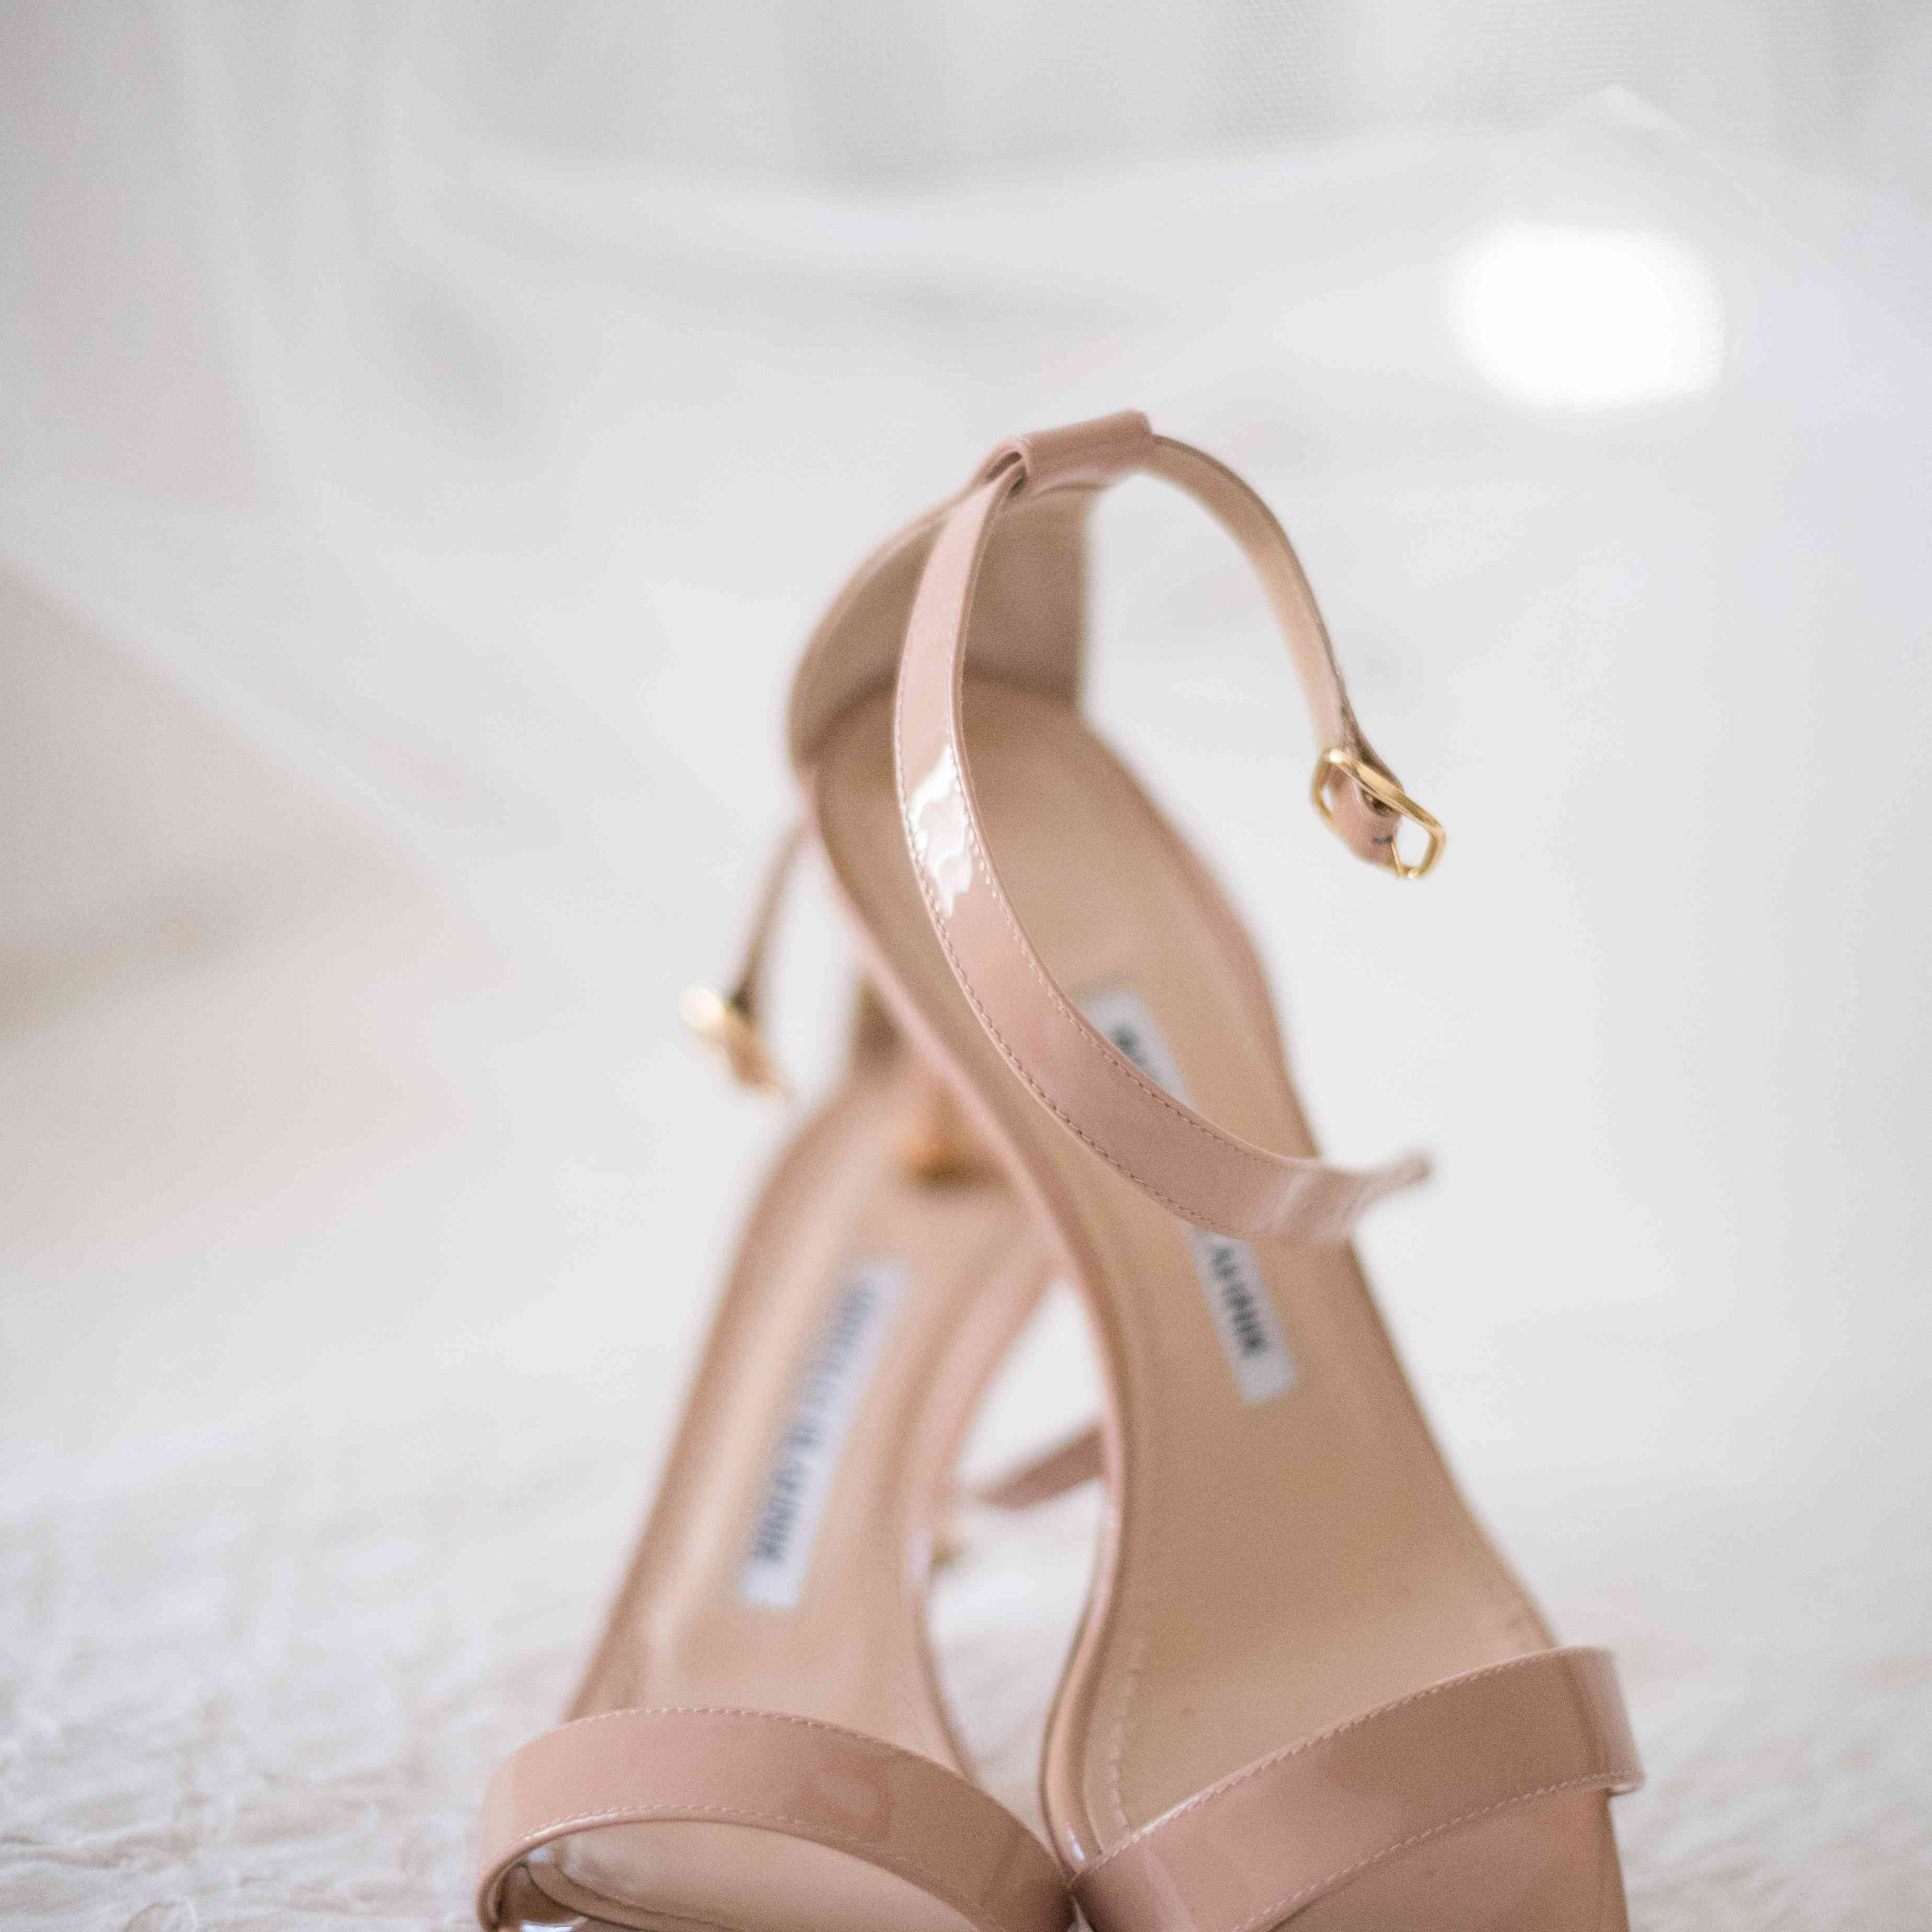 7 Tips For Finding The Best Wedding Shoes